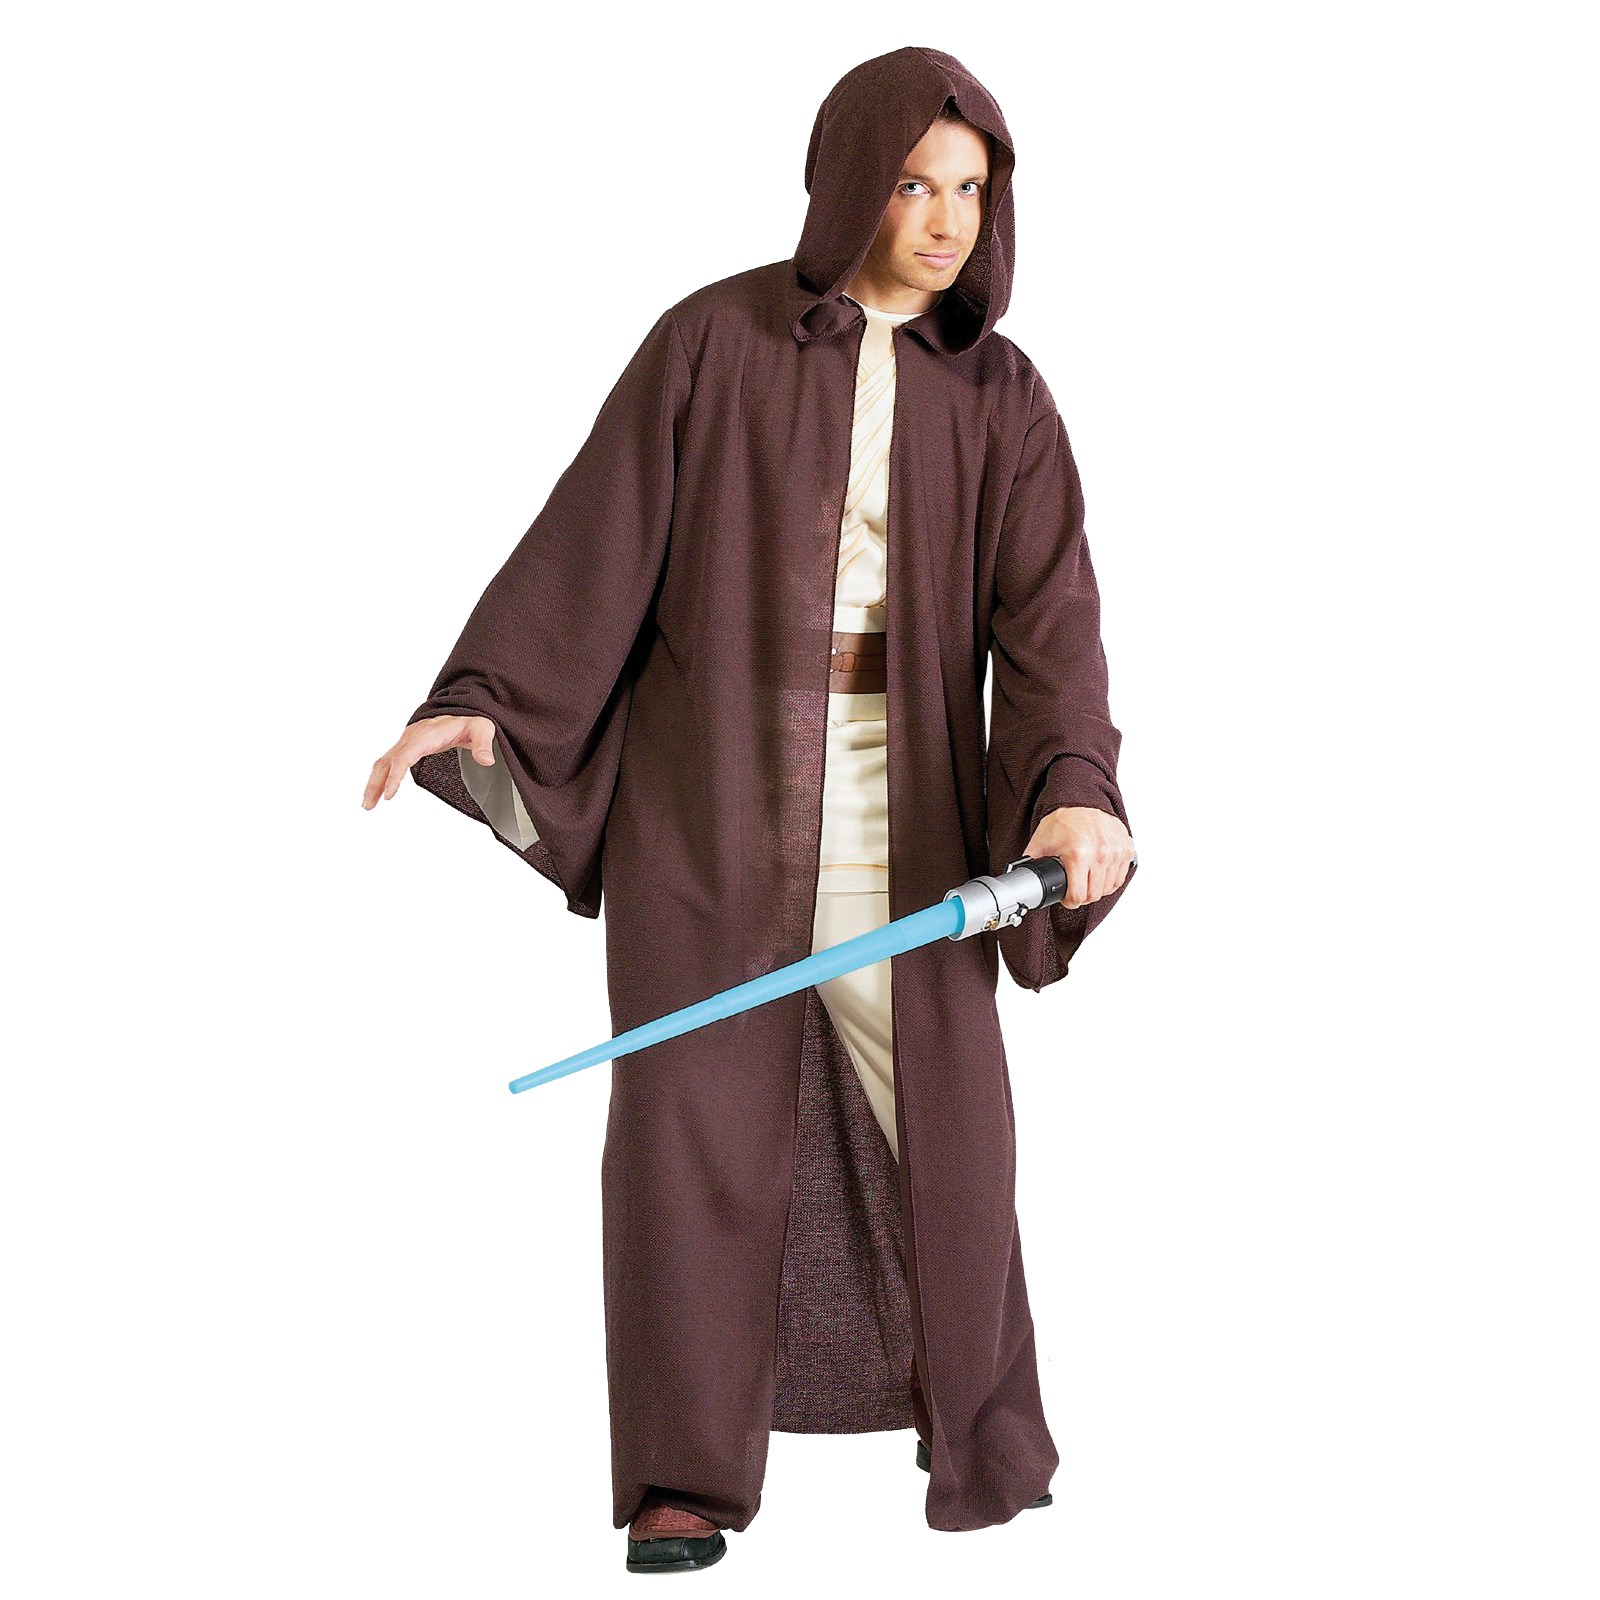 Image of Star Wars - Jedi Robe Deluxe Adult Costume